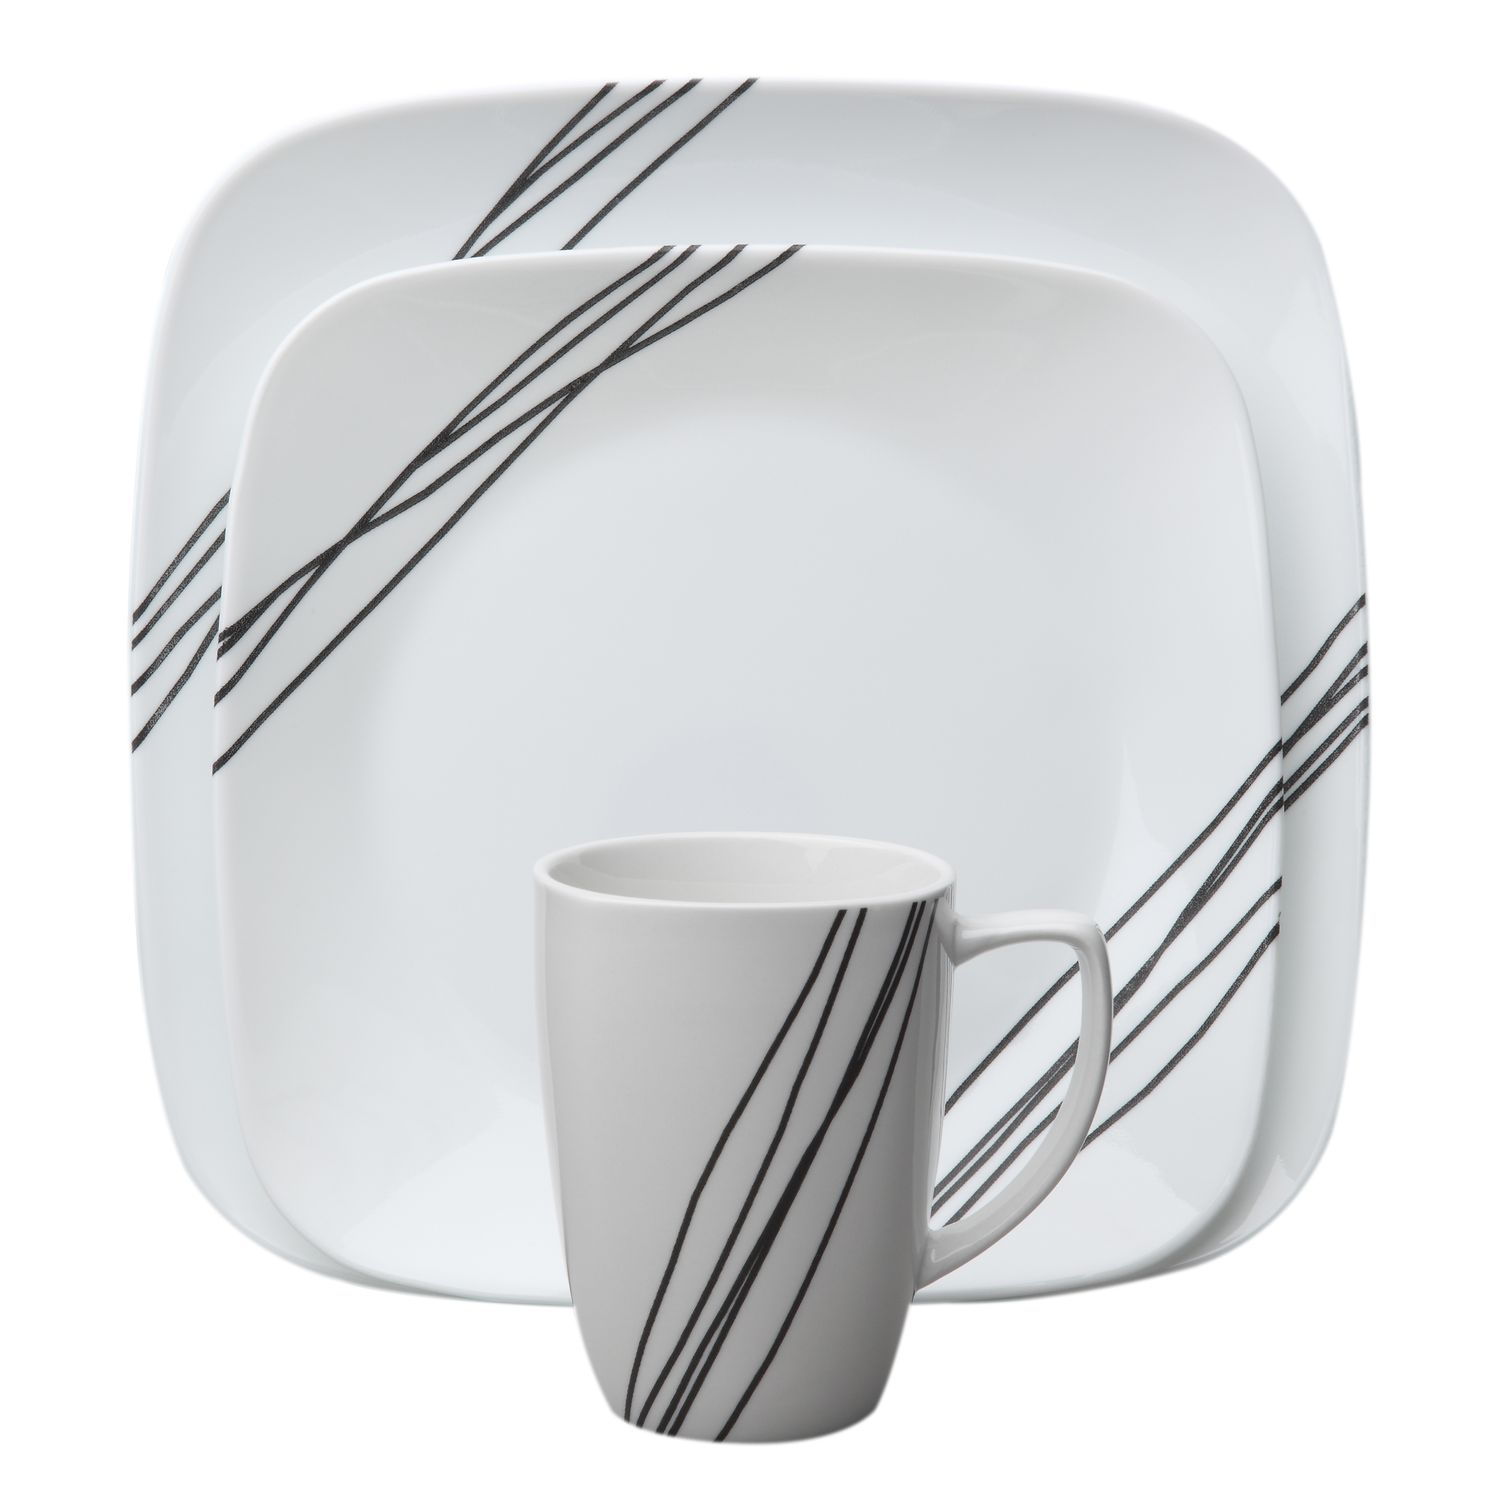 Corelle® Square™ Simple Sketch 16-Pc Dinnerware Set - World Kitchen  sc 1 st  Pinterest & Corelle® Square™ Simple Sketch 16-Pc Dinnerware Set - World Kitchen ...